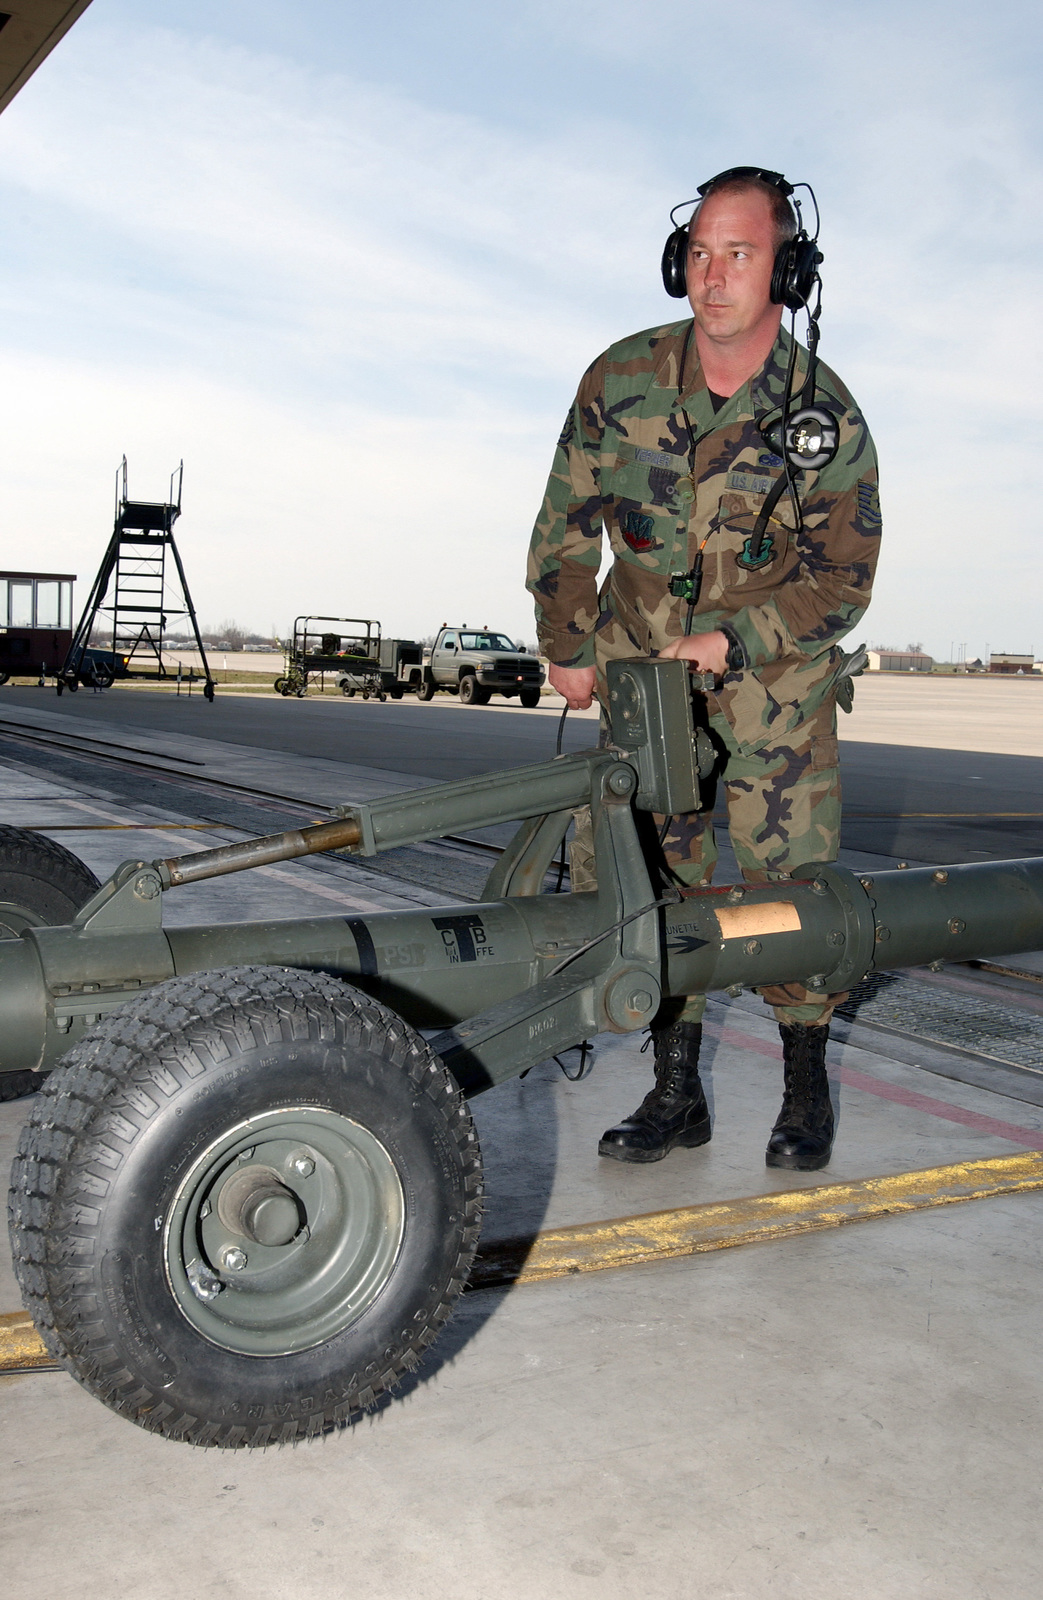 US Air Force (USAF) Technical Sergeant (TSGT) Steve Verner lowers the trailer wheels of a tow bar for a USAF B-2 Spirit. The aircraft was towed into a maintenance hanger at Whiteman Air Force Base (AFB)